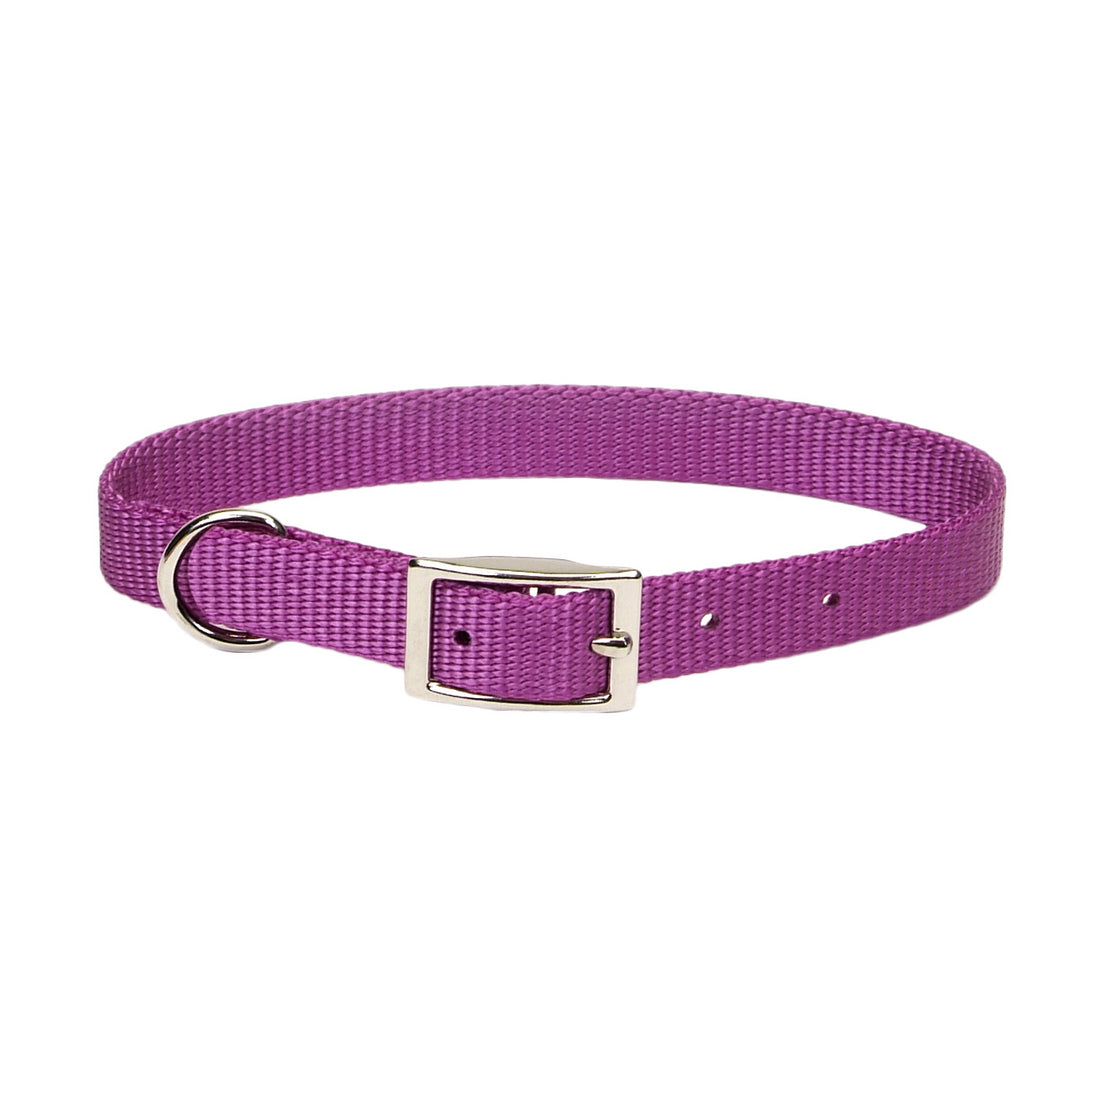 "Coastal Nylon Collar 16"" - 5/8"" Orchid"